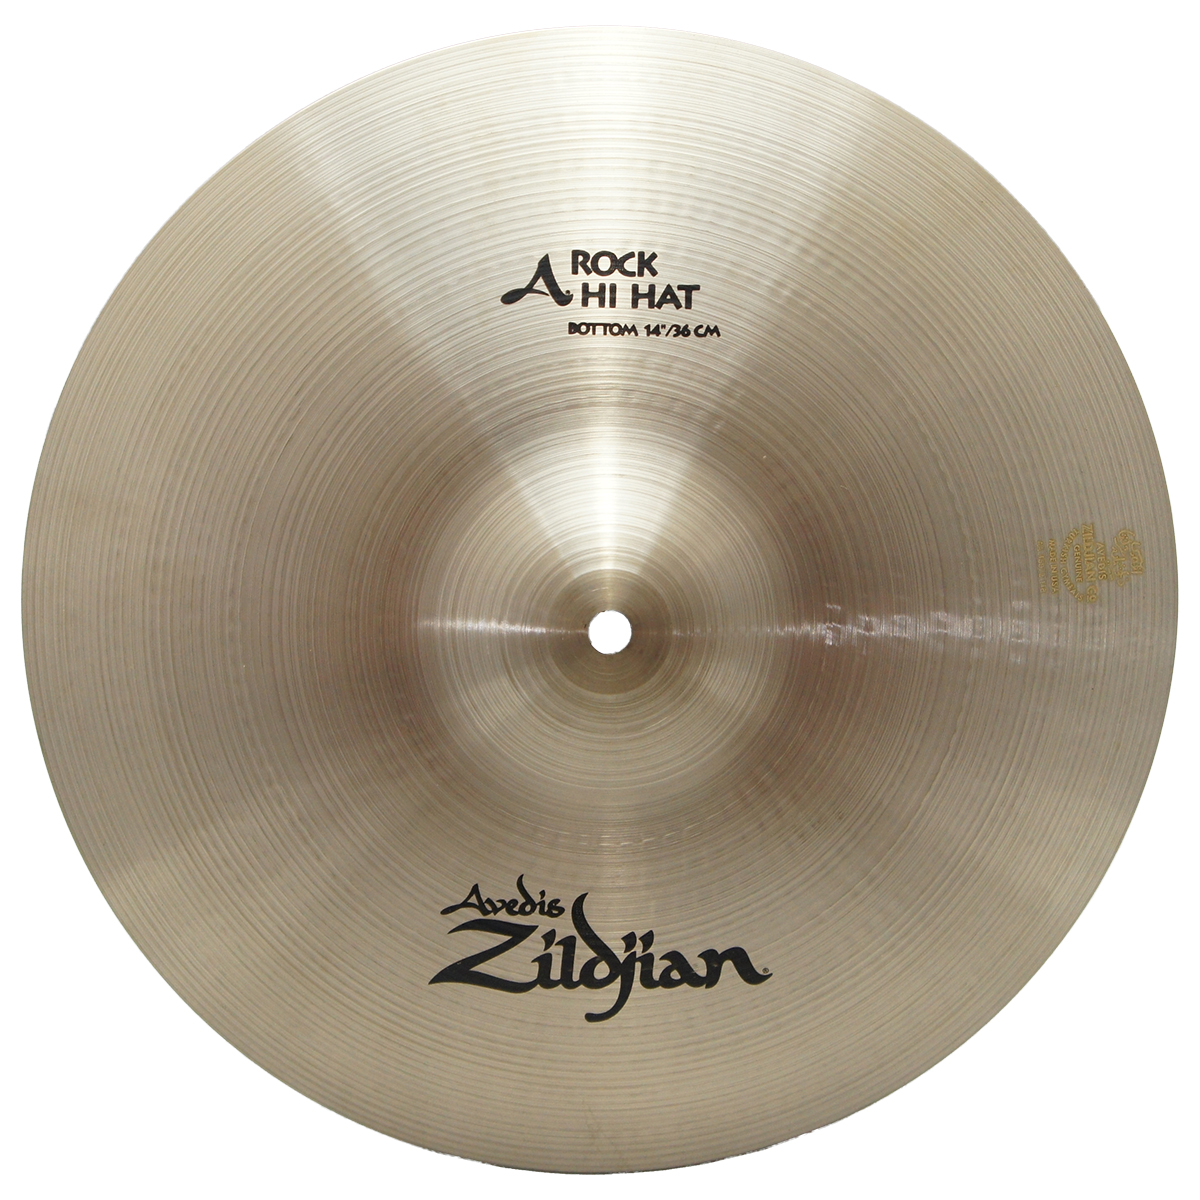 "Zildjian 14"" A Series Rock HiHats Bottom Drumset Cymbal with Med to High Pitch A0162"